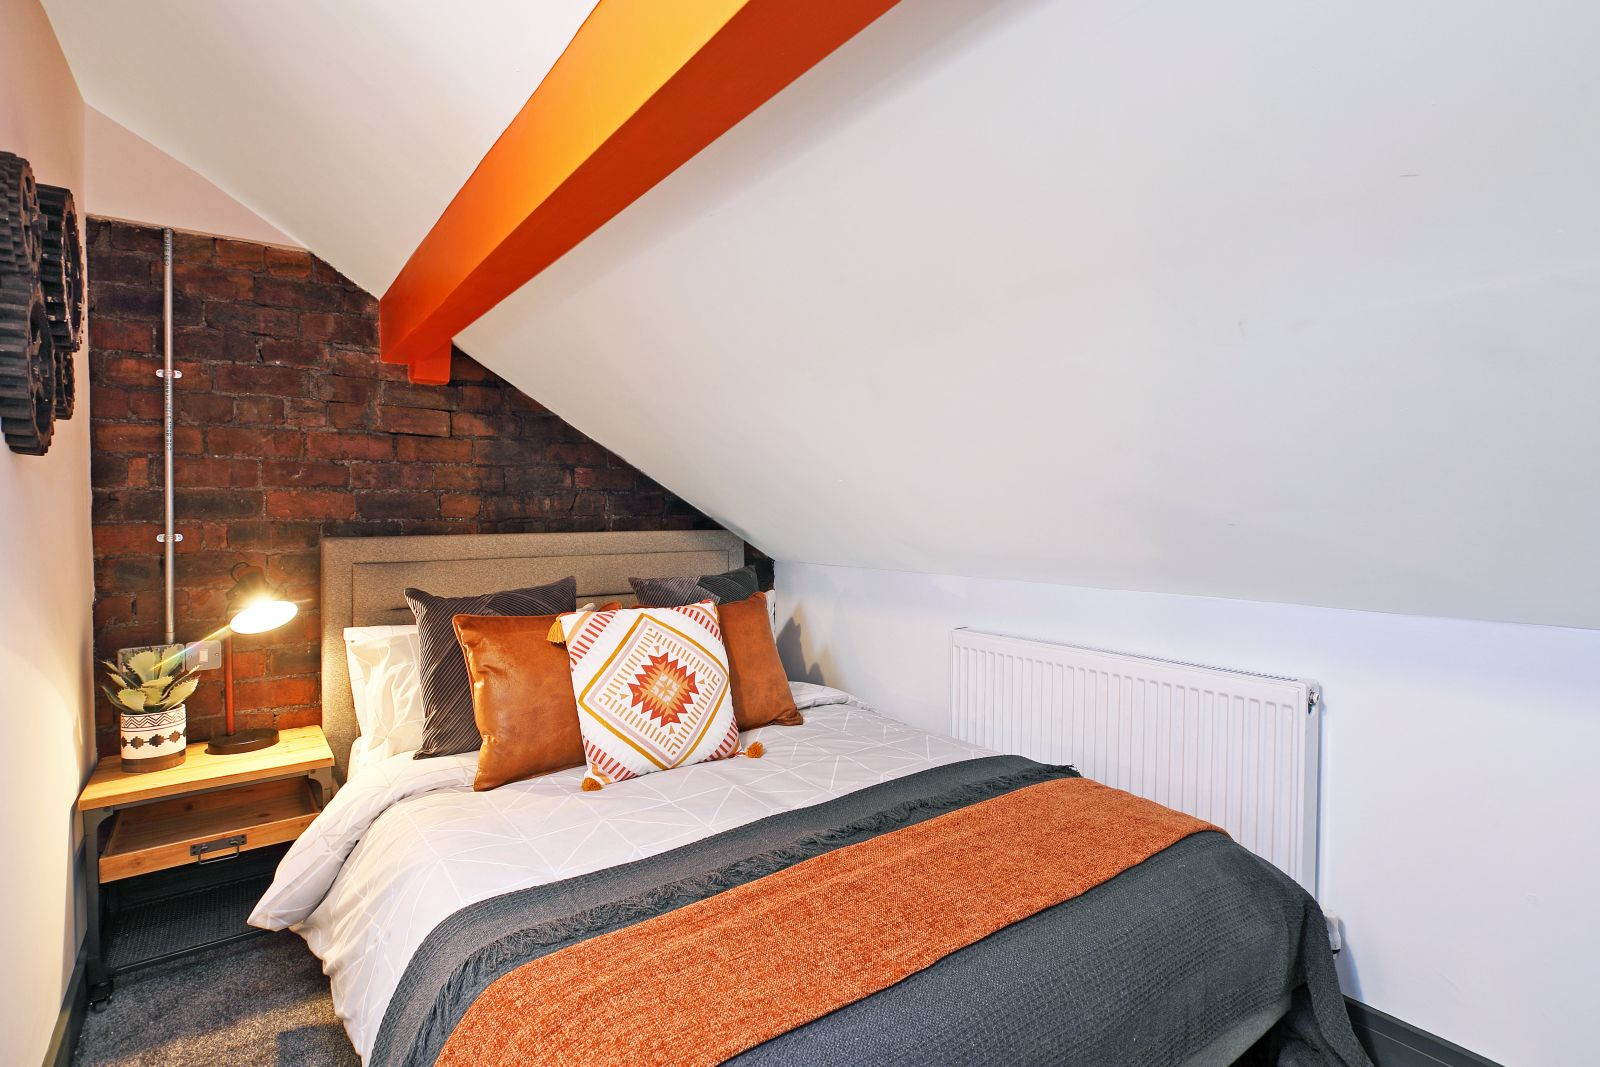 Property photo 1 of 25. Swanky And Stylish Brand New Houseshare In Wakefield!